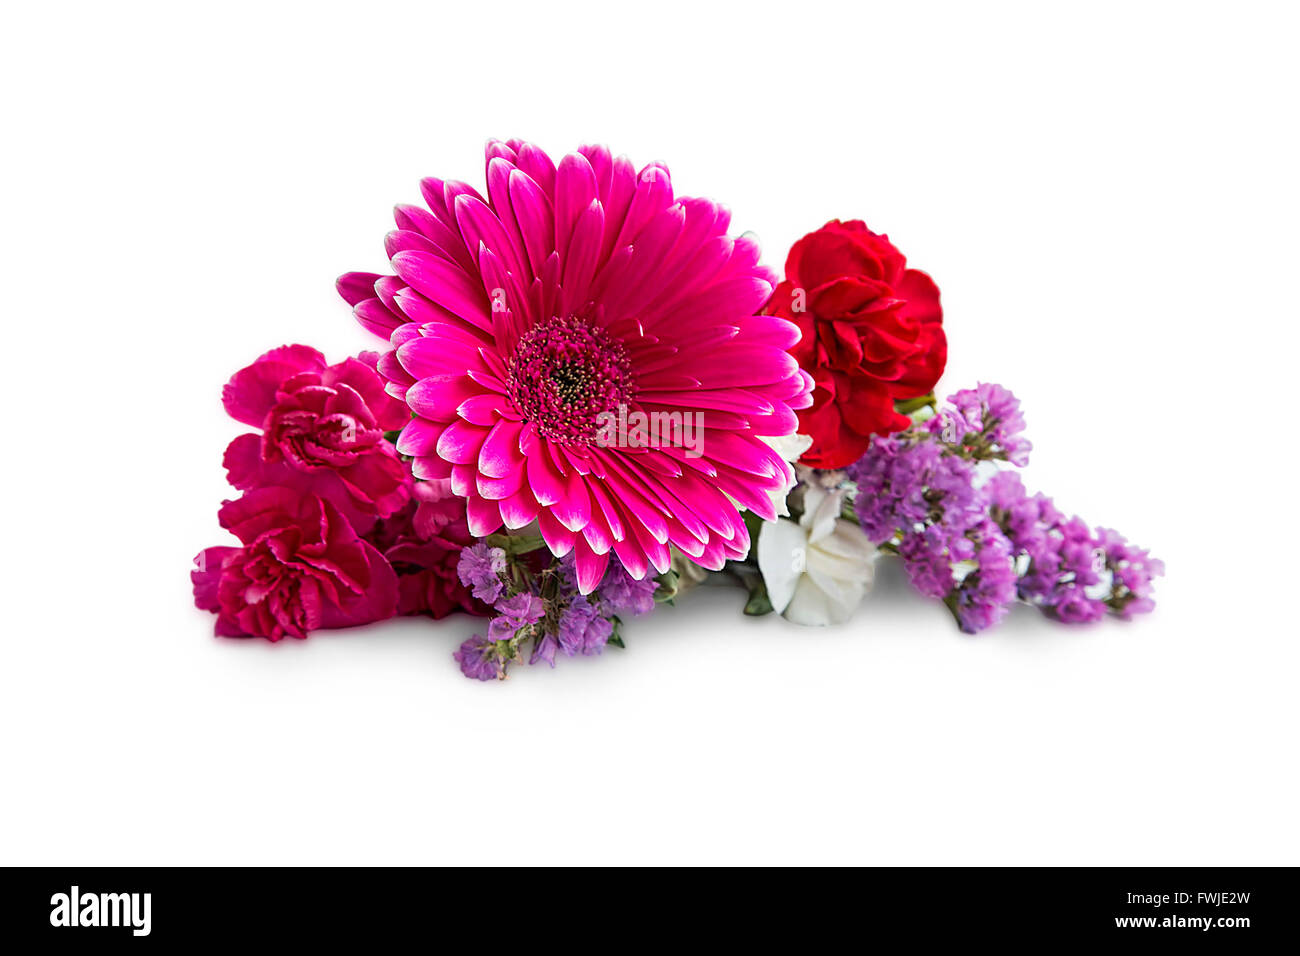 Spring bouquet flowers with gerbera,carnations and purple flowers isolated on white - Stock Image